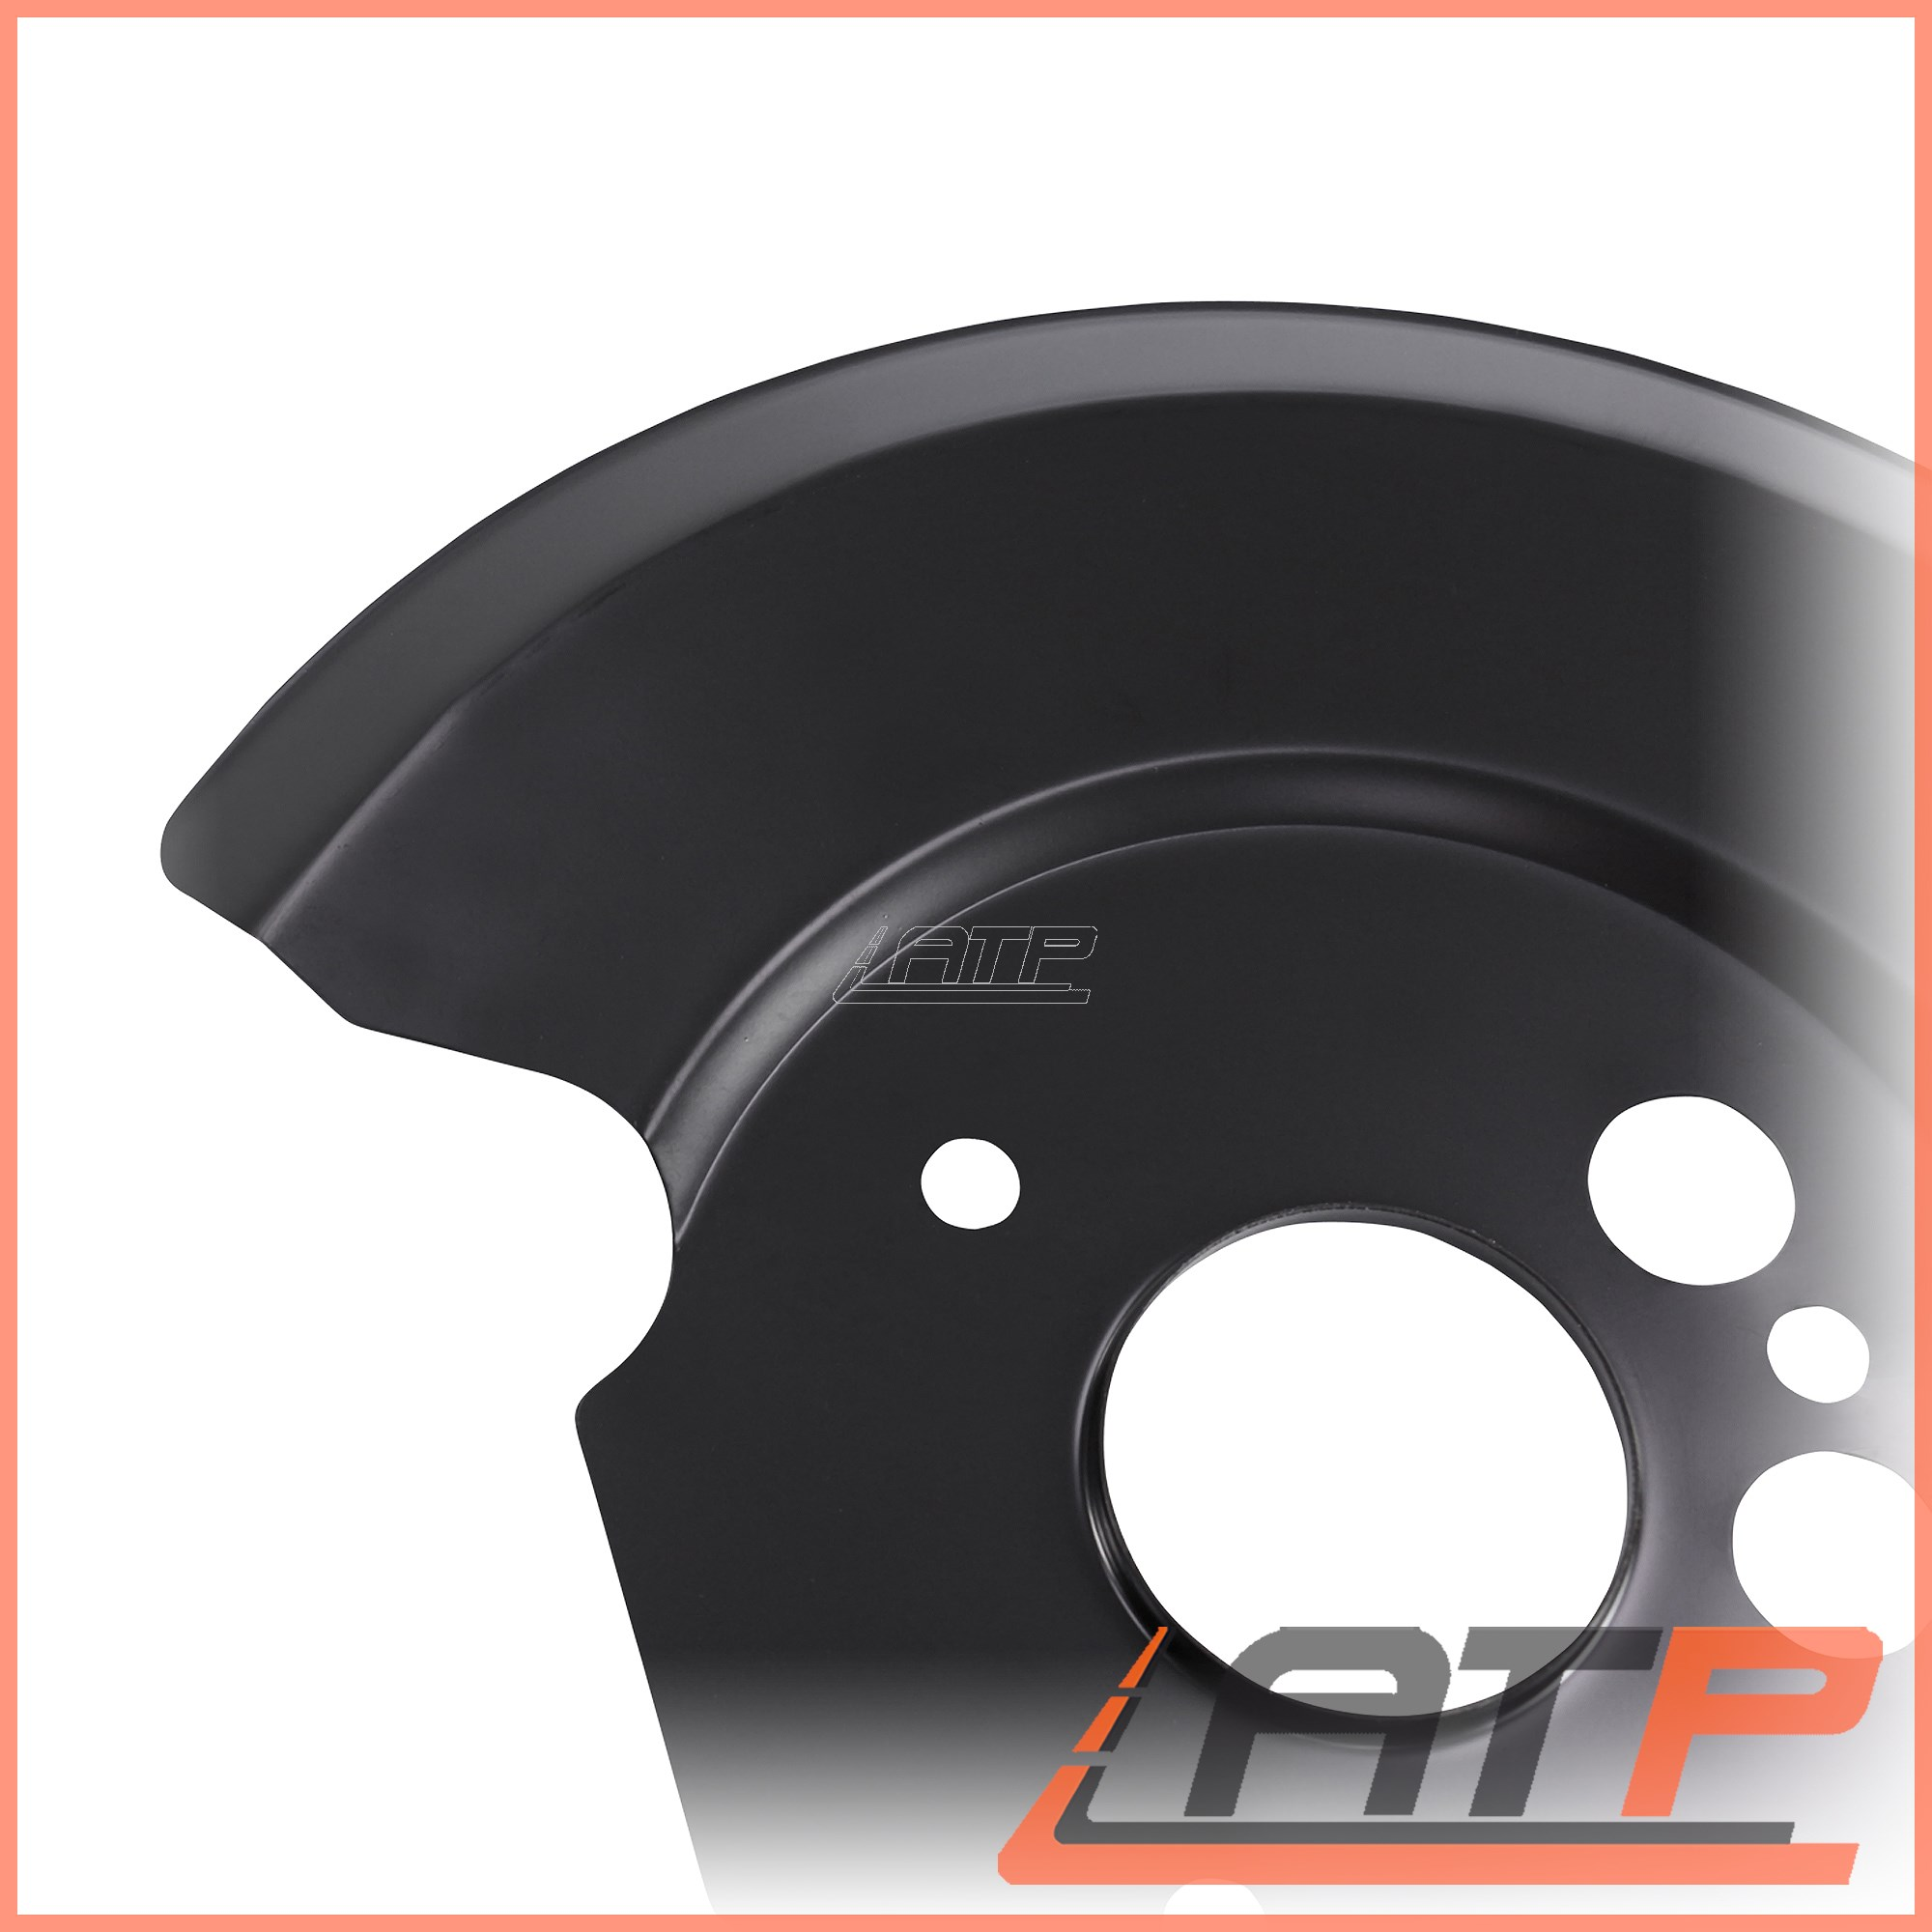 2X COVER PLATE FOR BRAKE REAR LEFT+RIGHT FORD MONDEO MK 1 93-96 2 96-00